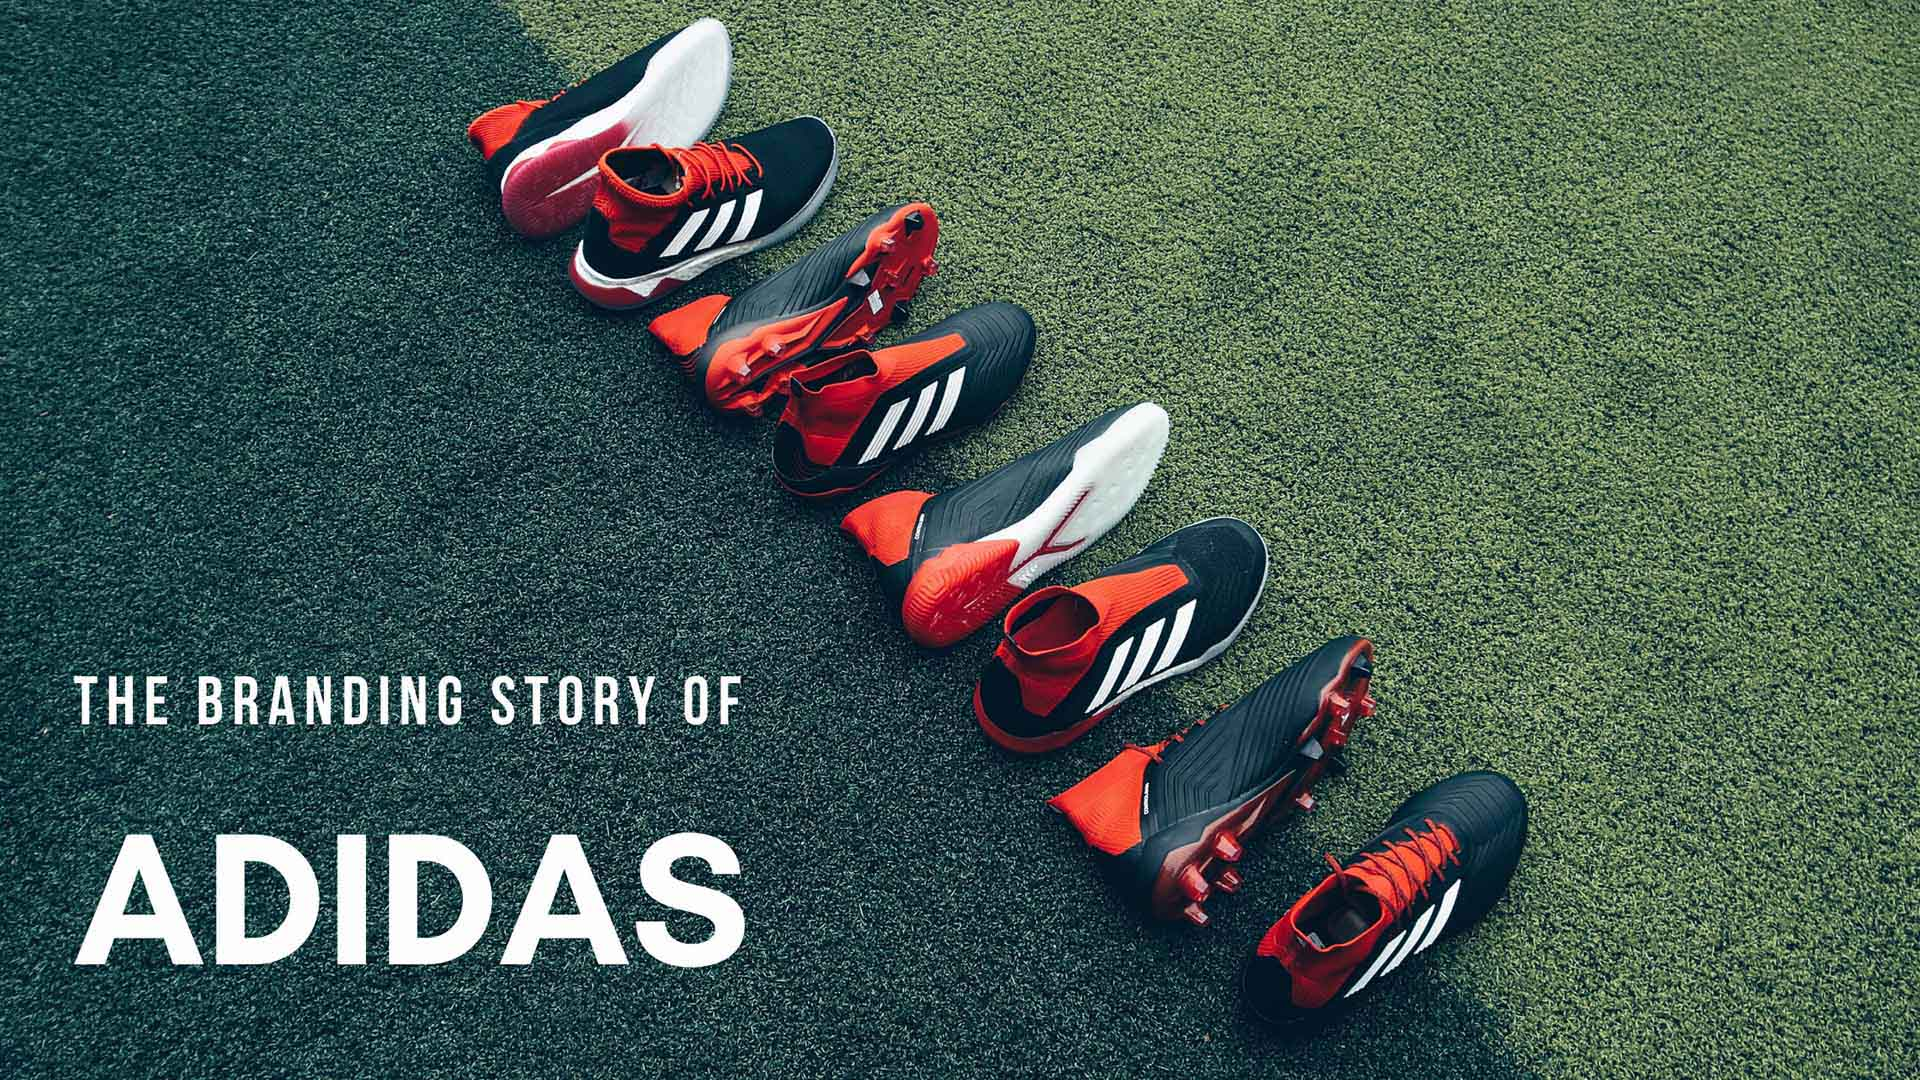 Adidas Branding Campaigns Logos And History Approval Studio